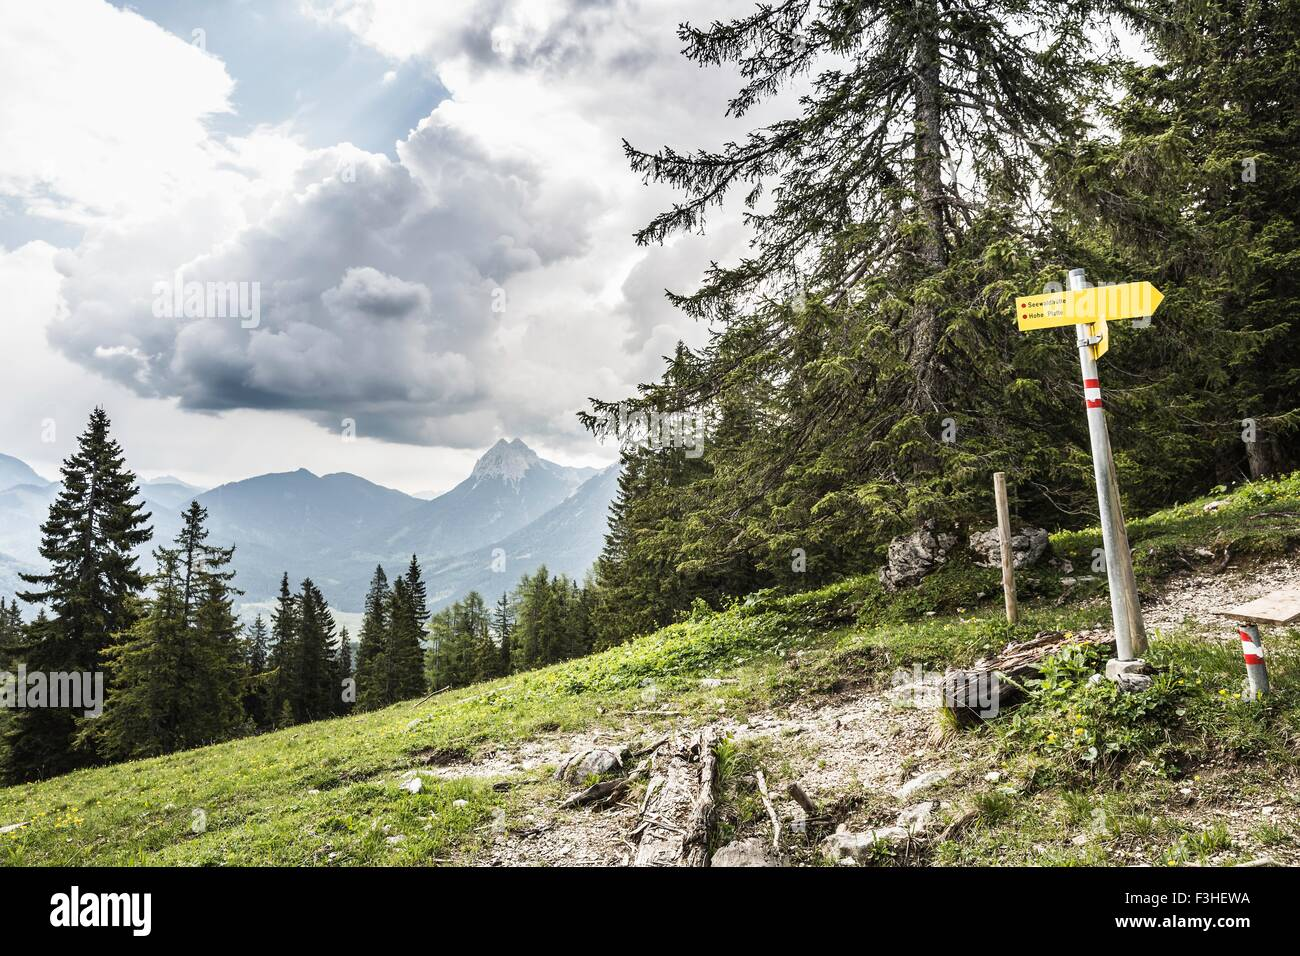 Hilly landscape and direction sign, Achenkirch, Austria - Stock Image